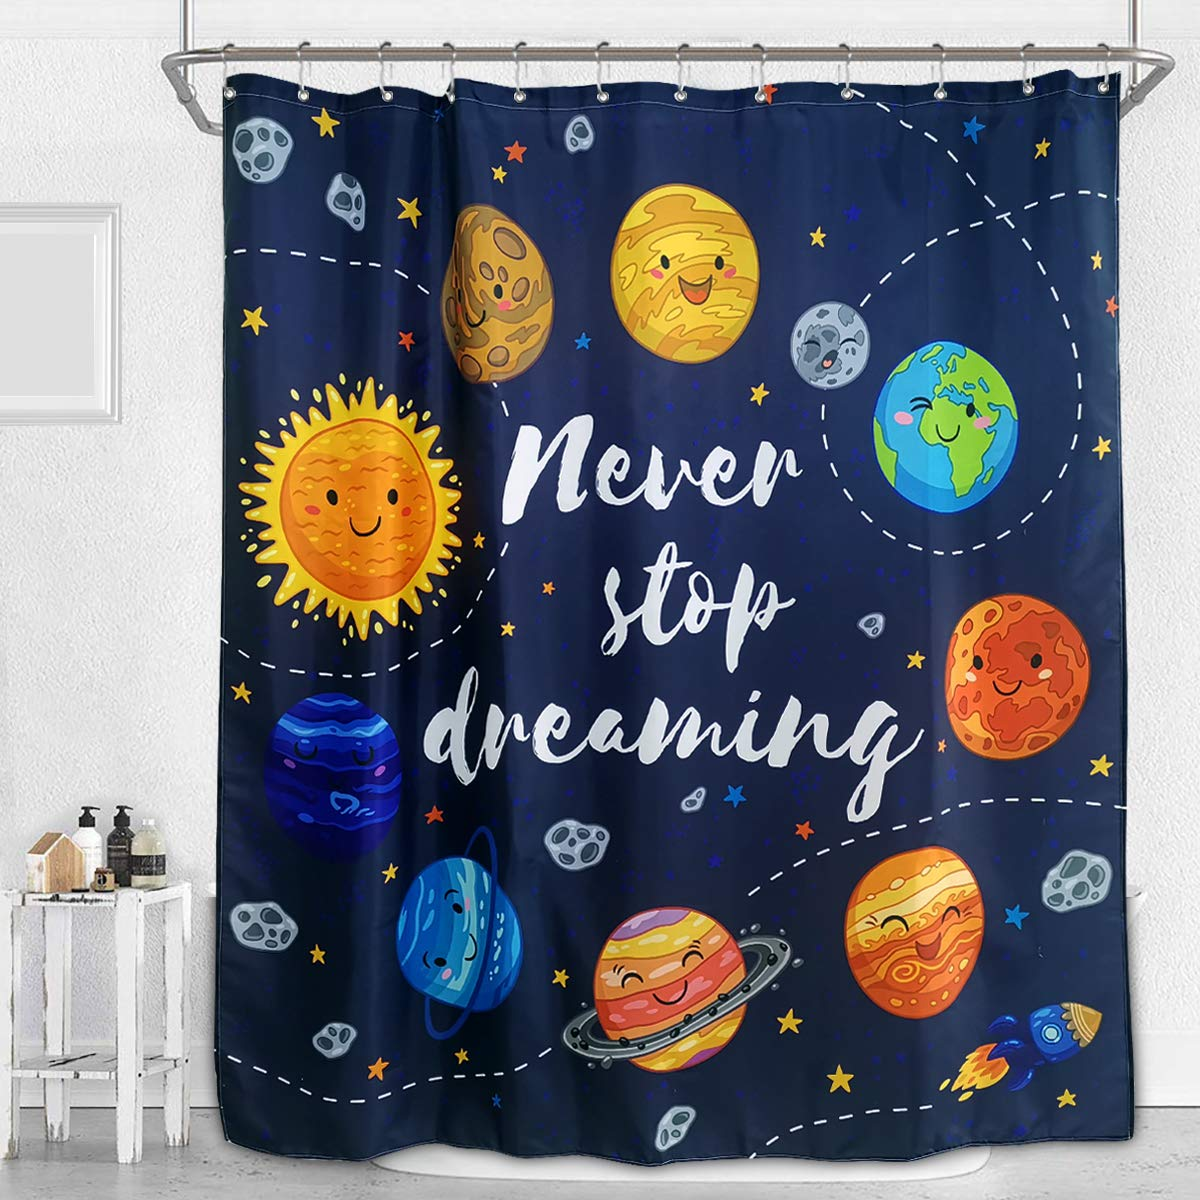 Unicorn Shower Curtain Pink Animals Cartoon Kids Girls Floral Colorful Oil Painting Decor Fabric Set Polyester Waterproof 72x72 Inch 12-Pack Plastic Hooks